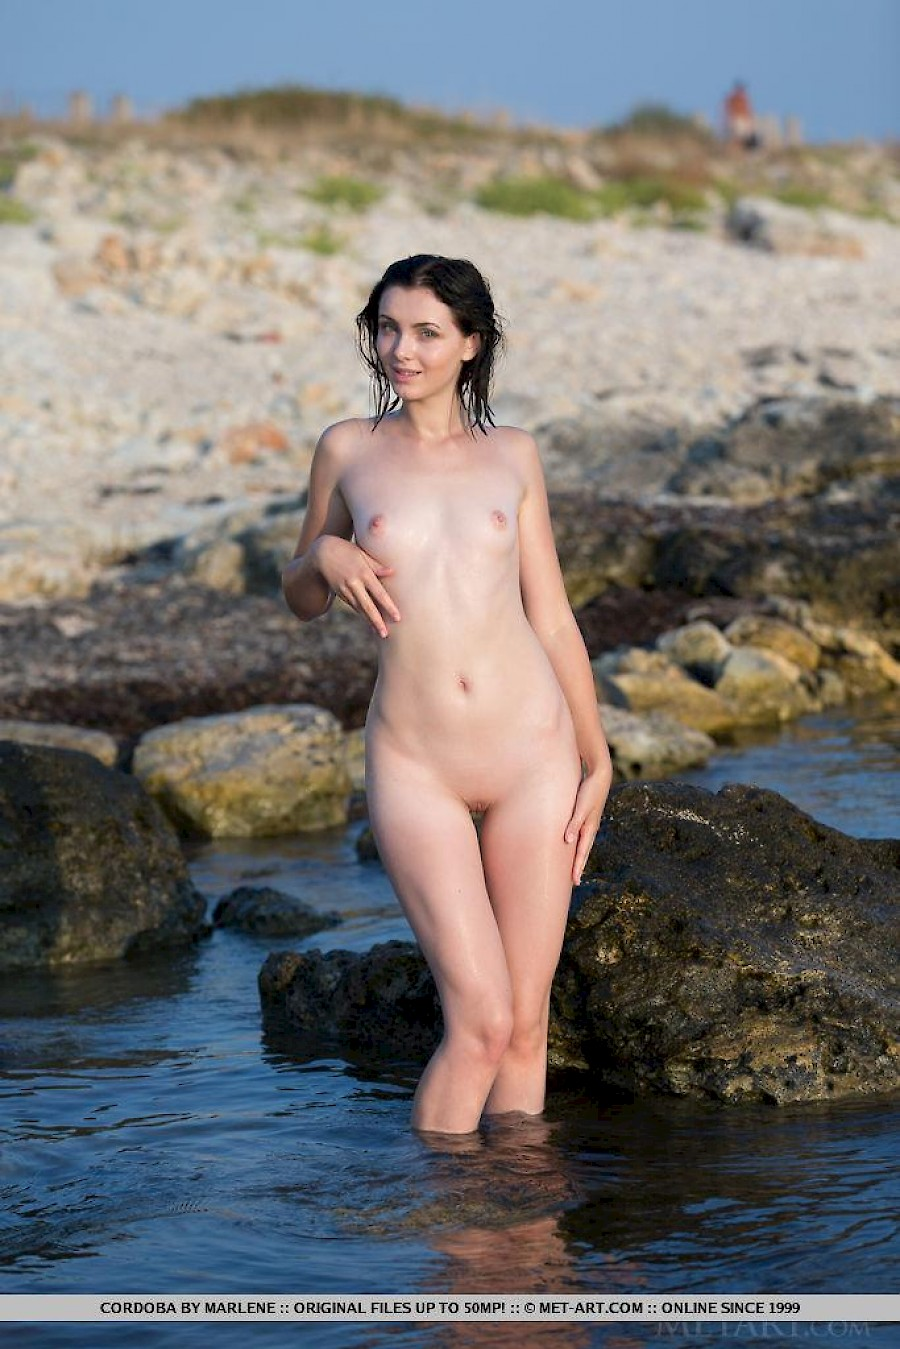 Nude skinny dipping girls 1